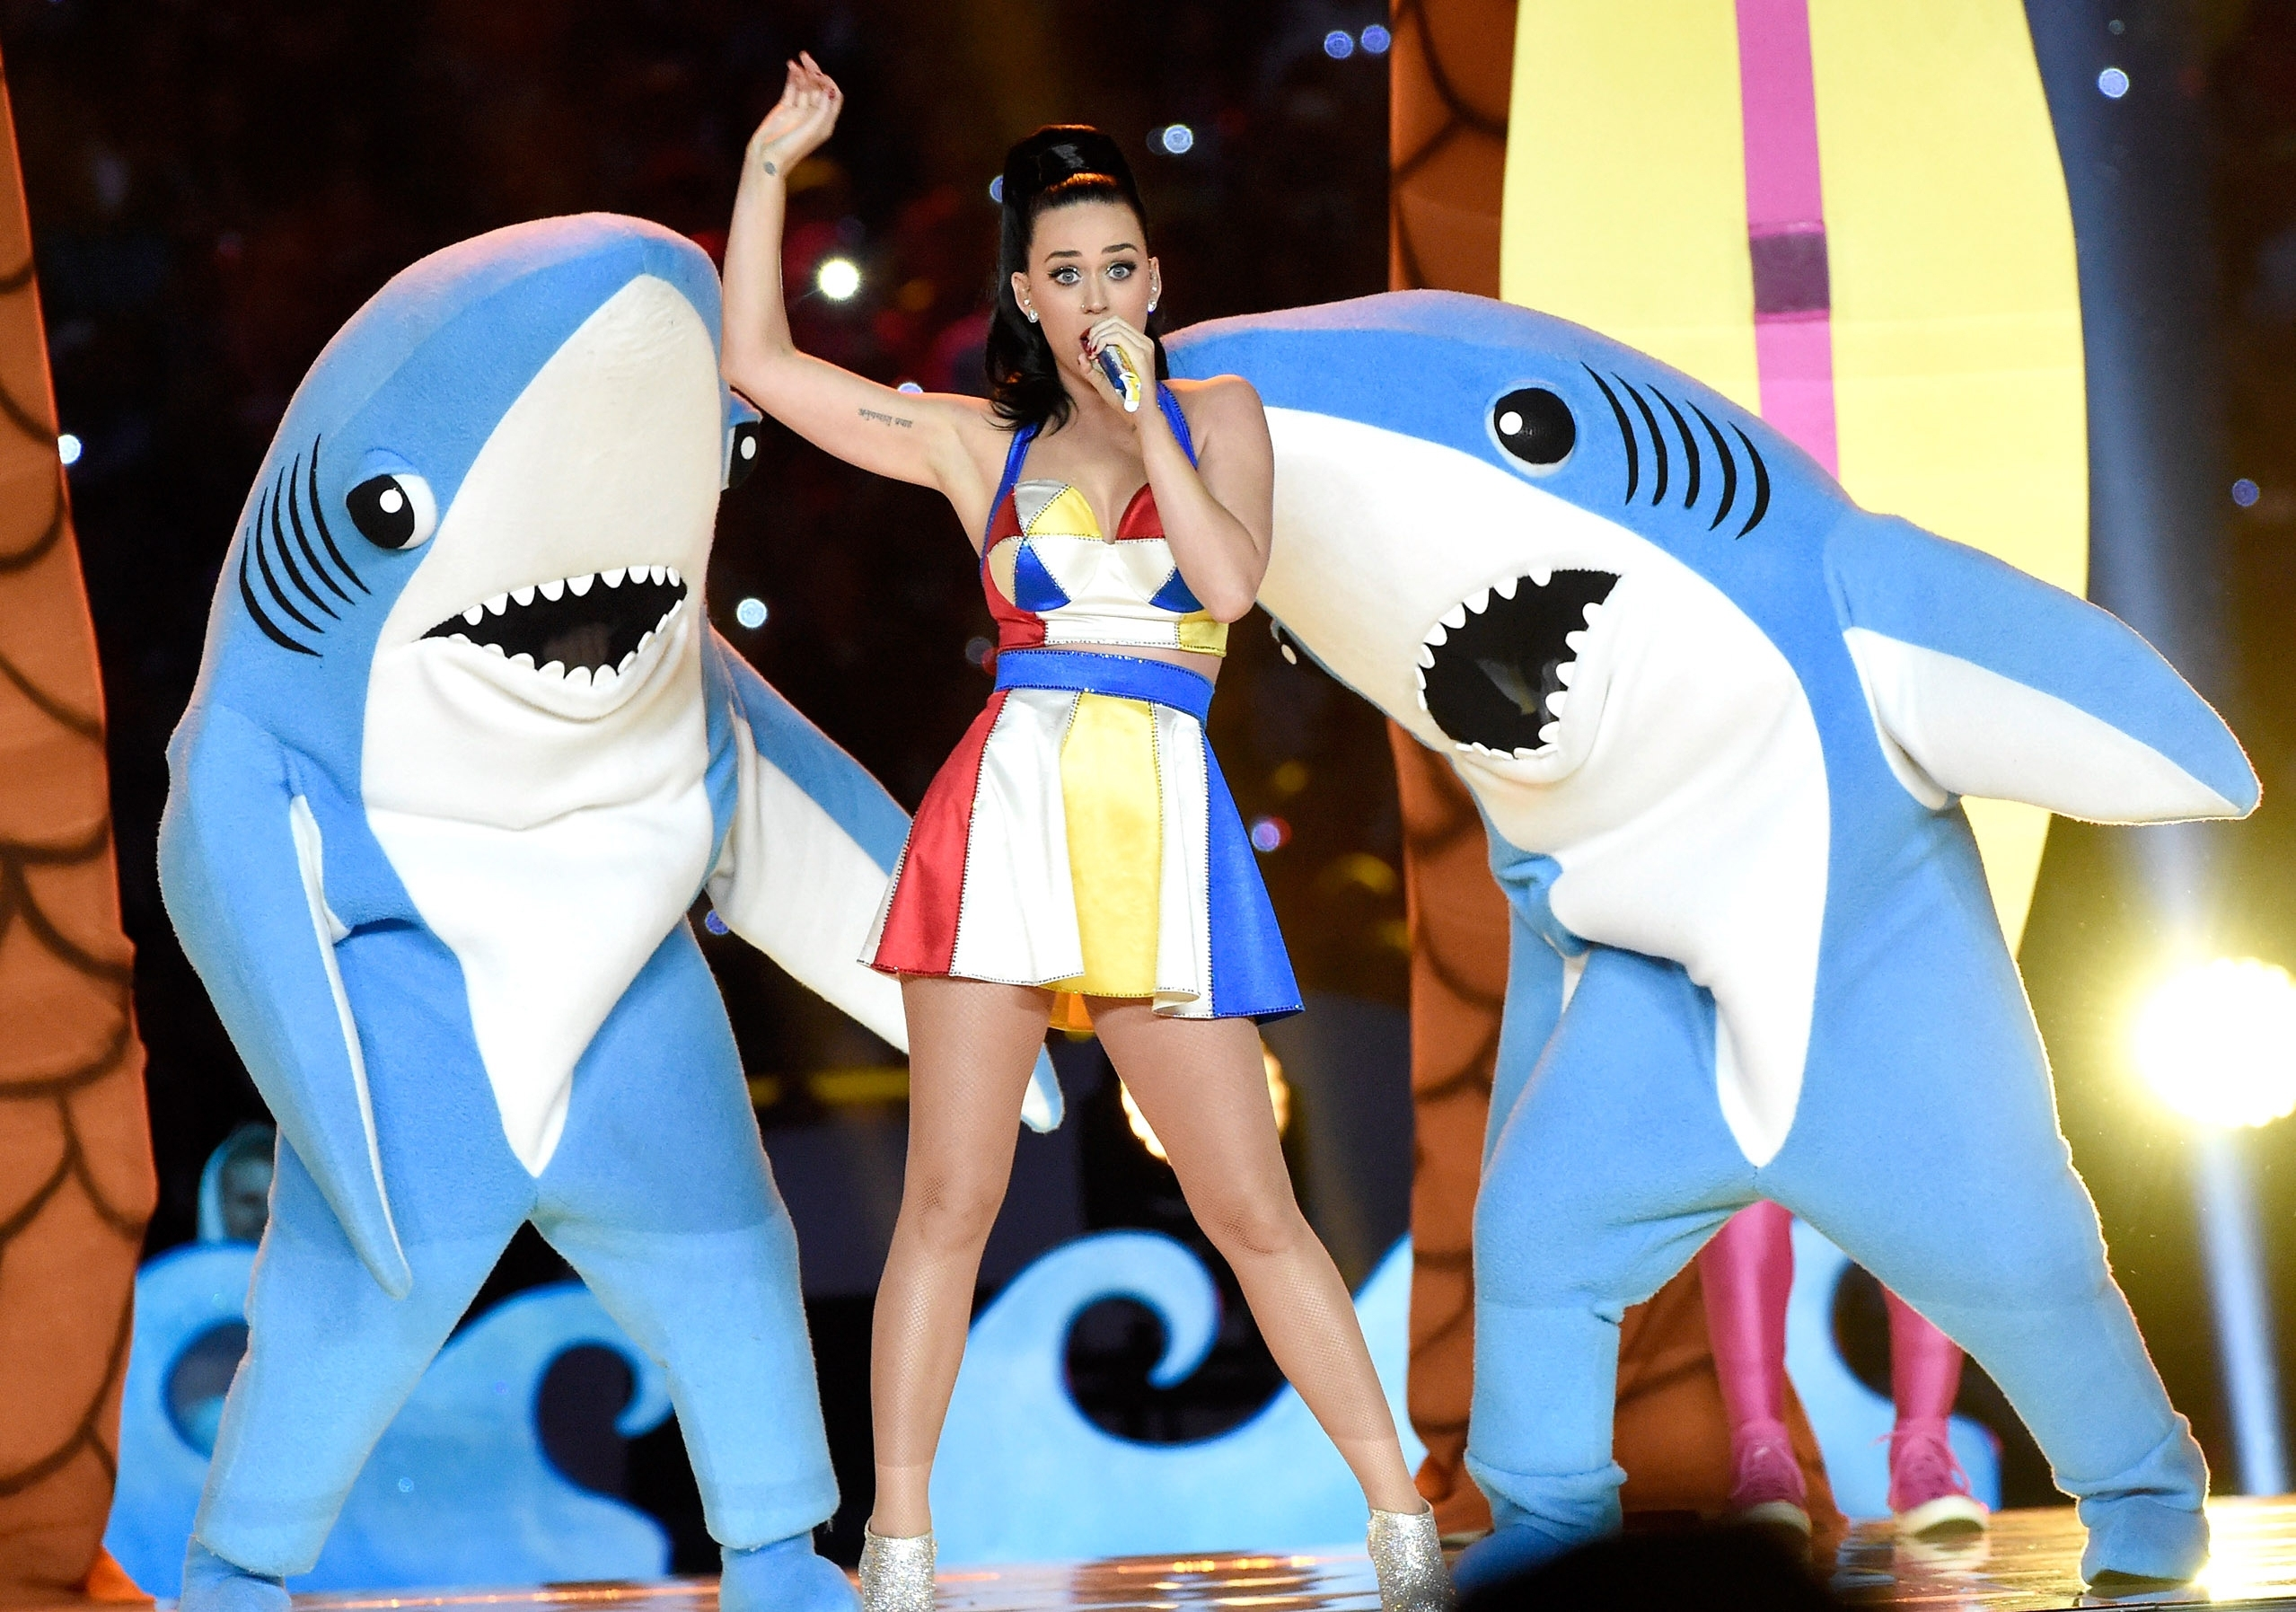 Katy Perry's 'left Shark' Dancer Talks Super Bowl within Katy Perry Super Bowl